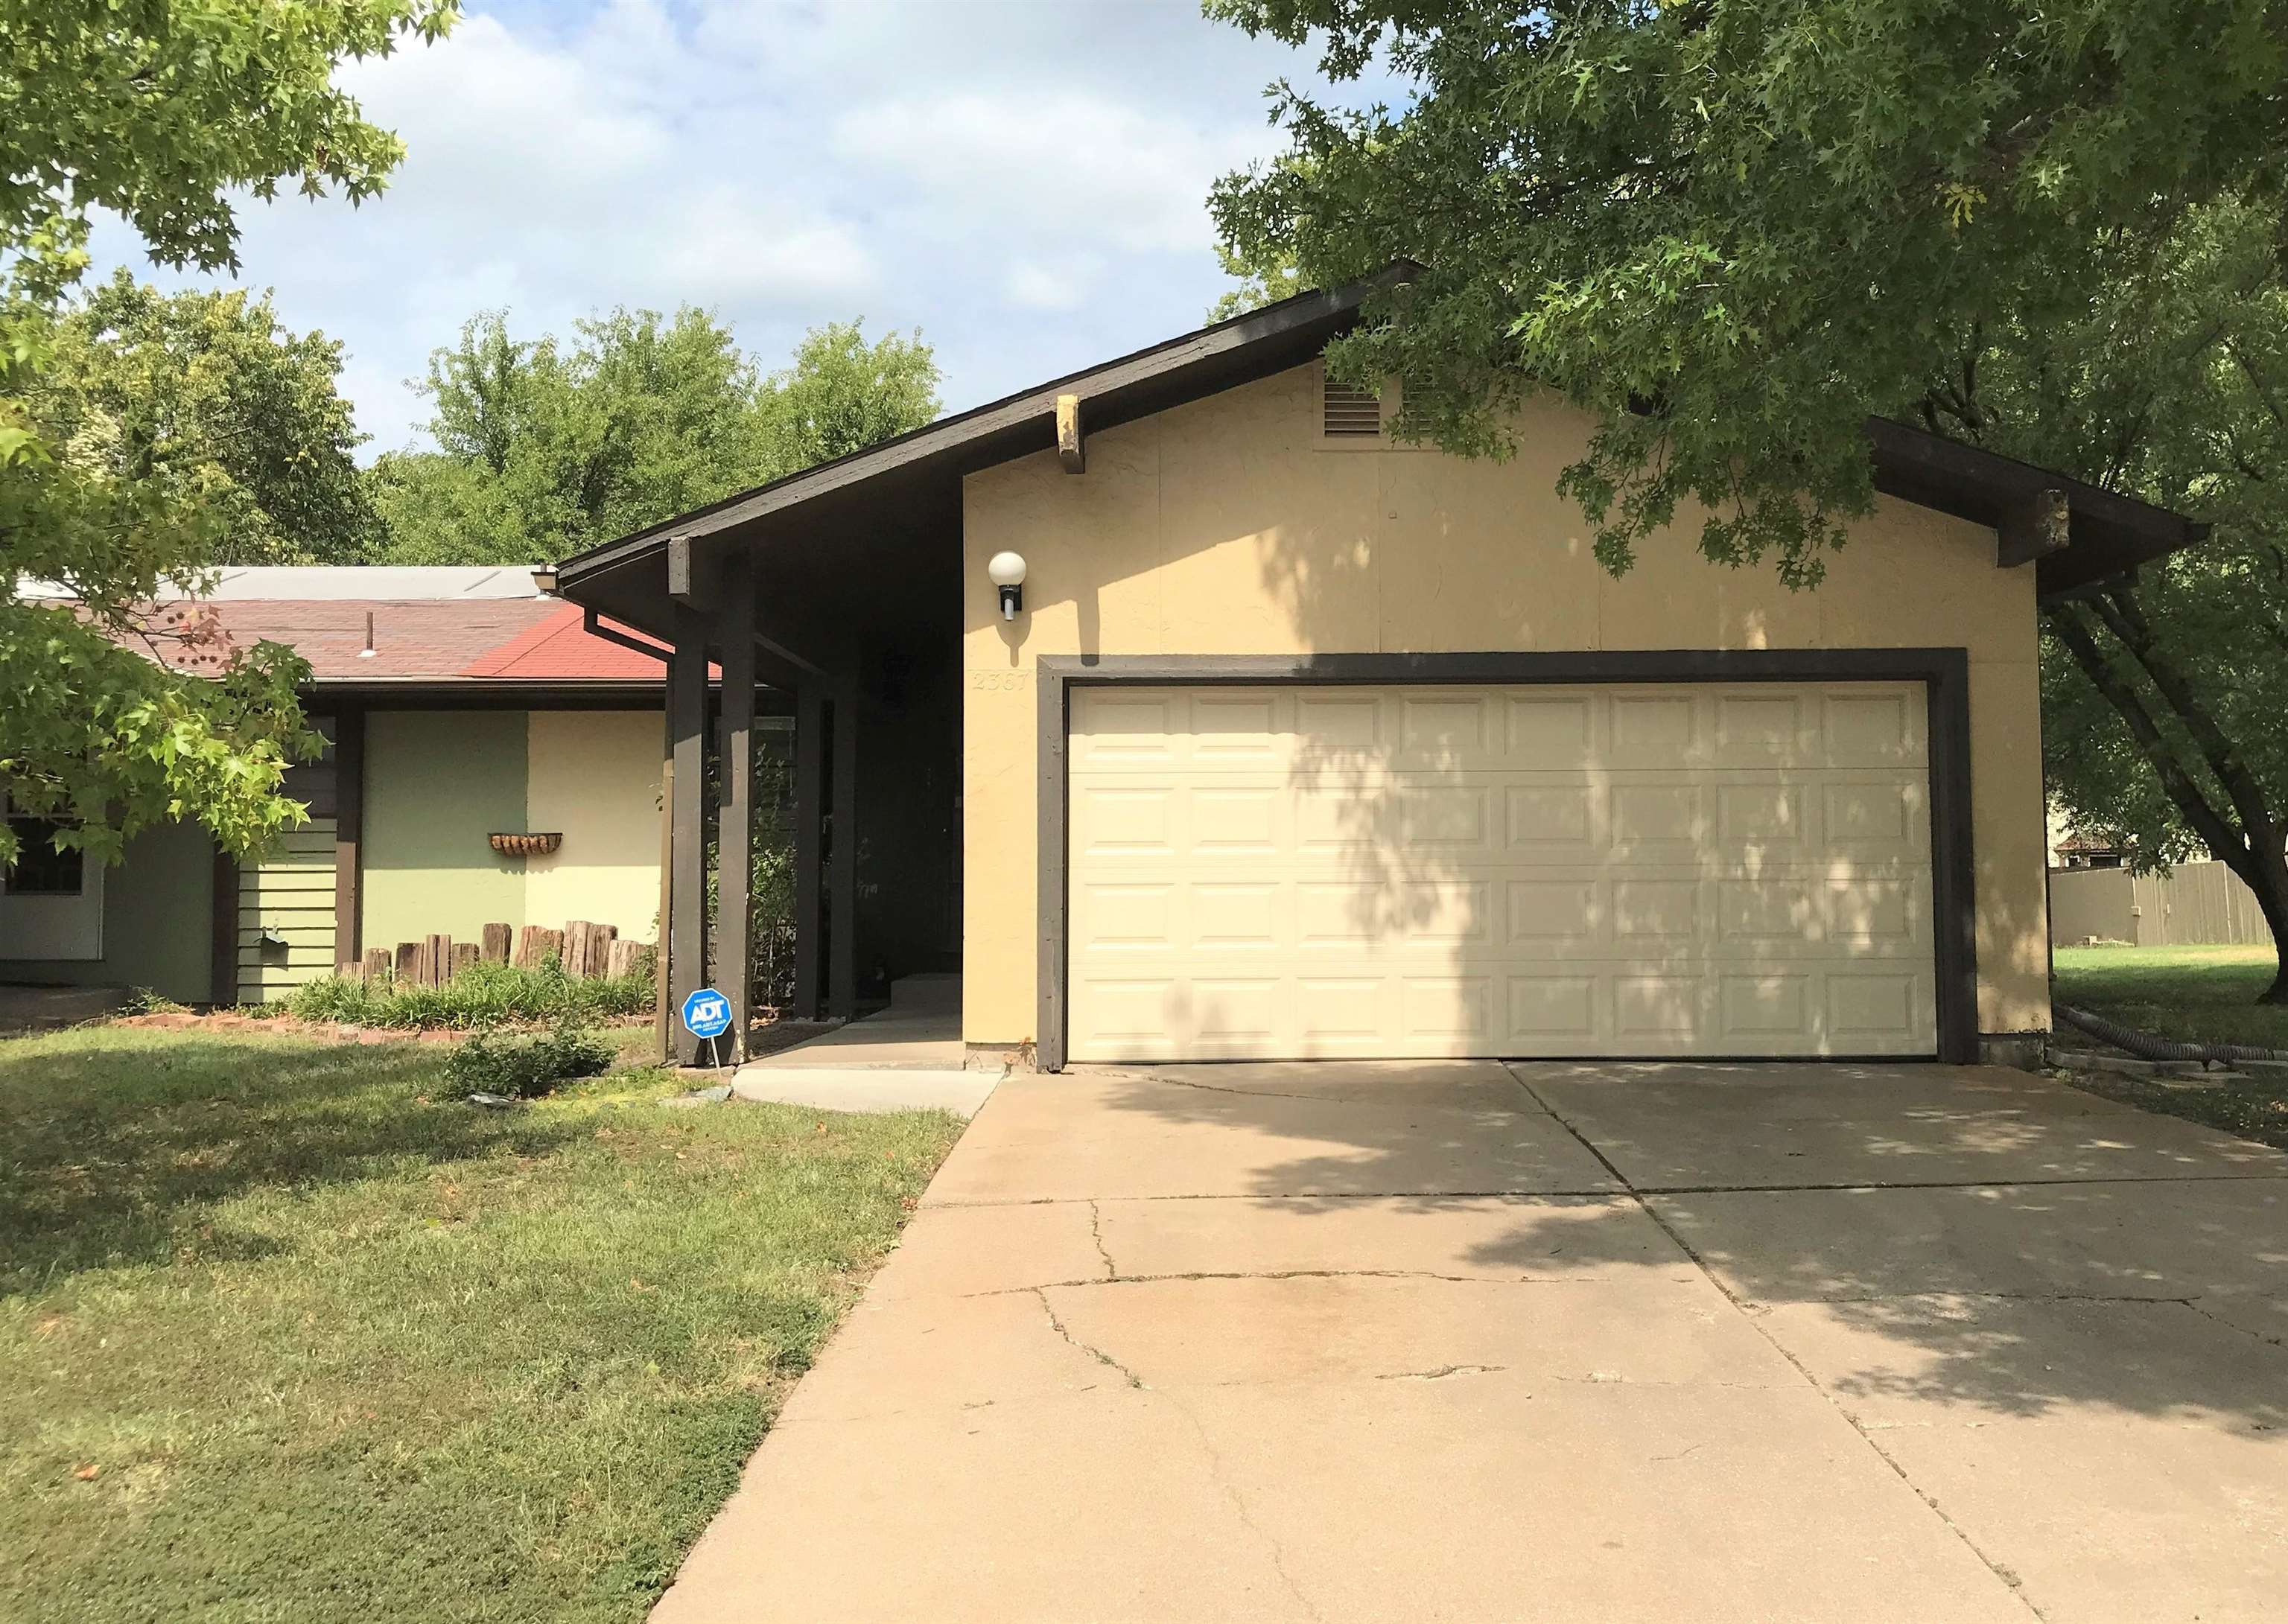 This twin home is conveniently located in northeast Wichita, walking distance from shops, dining, en